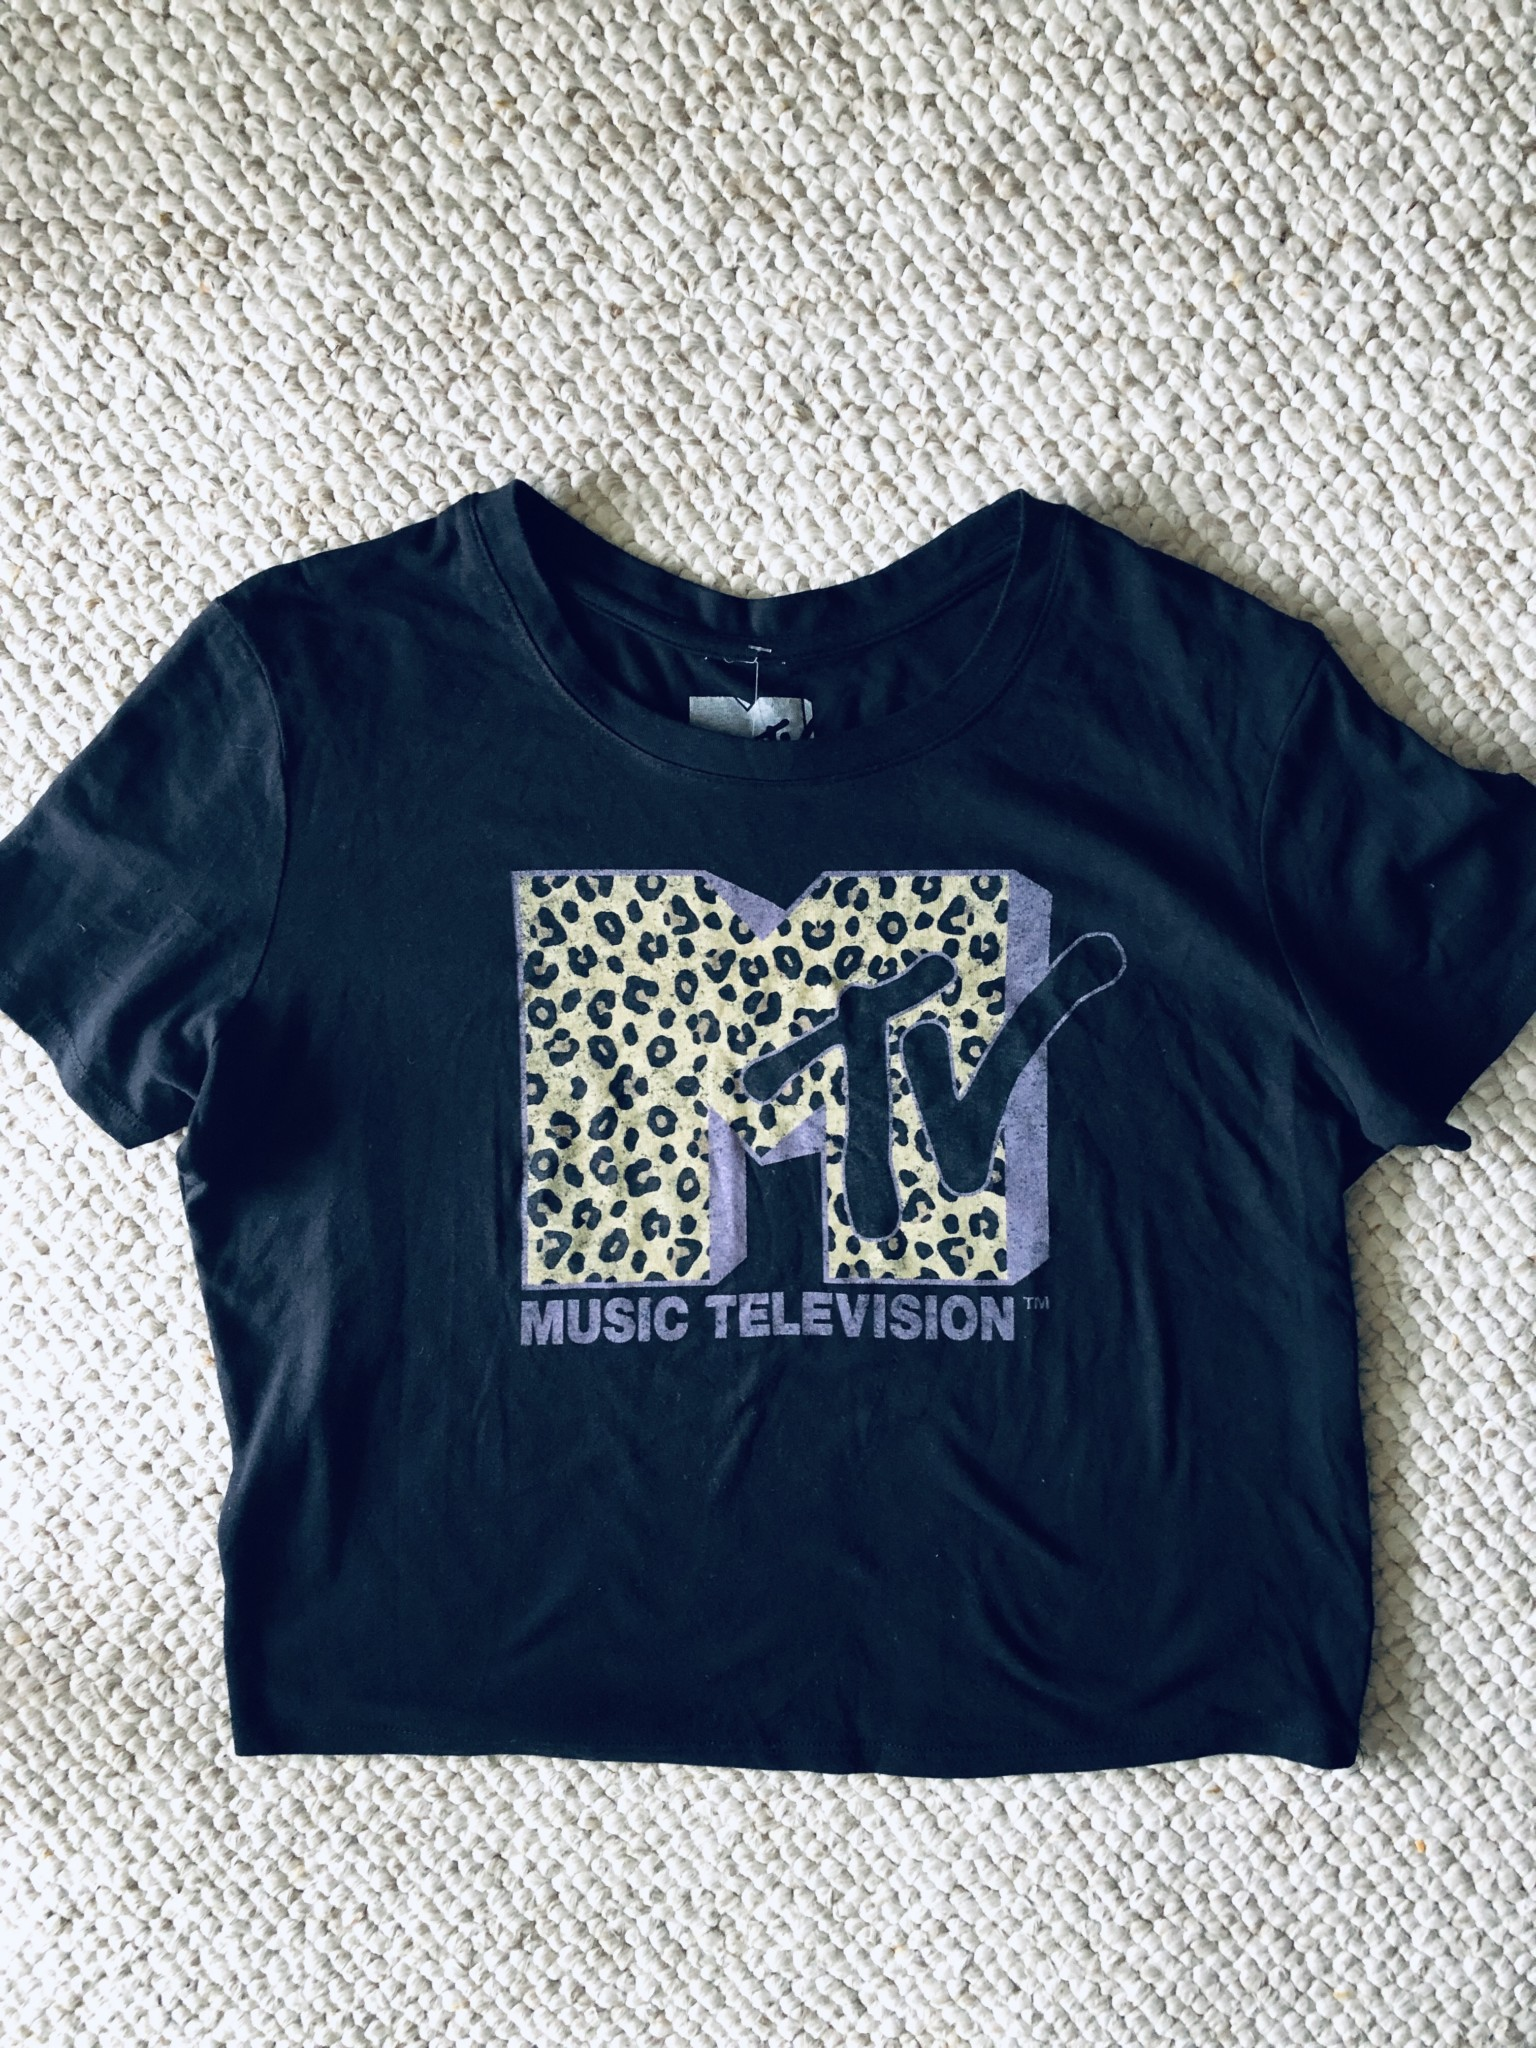 T-shirt MTV en liquidation à 3,99$